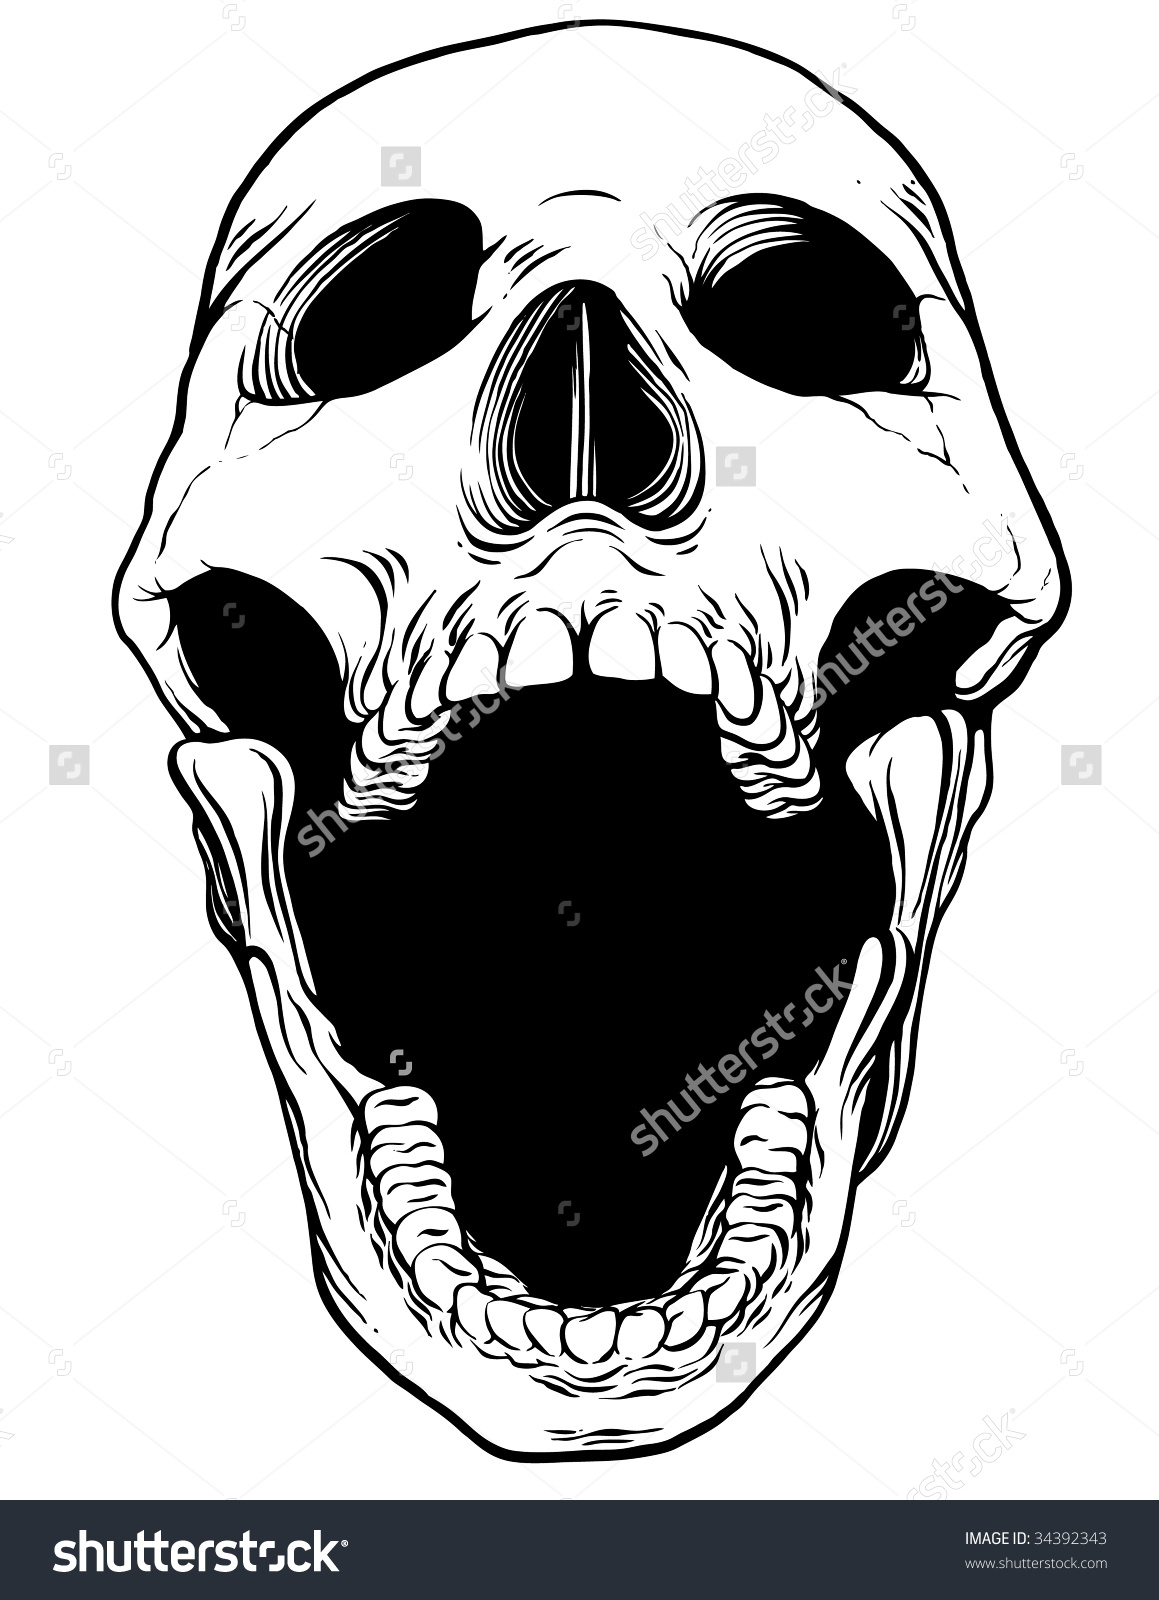 skull side view drawing at getdrawings com free for personal use skull side view drawing of dog outline clip art free cat and dog outline clip art free